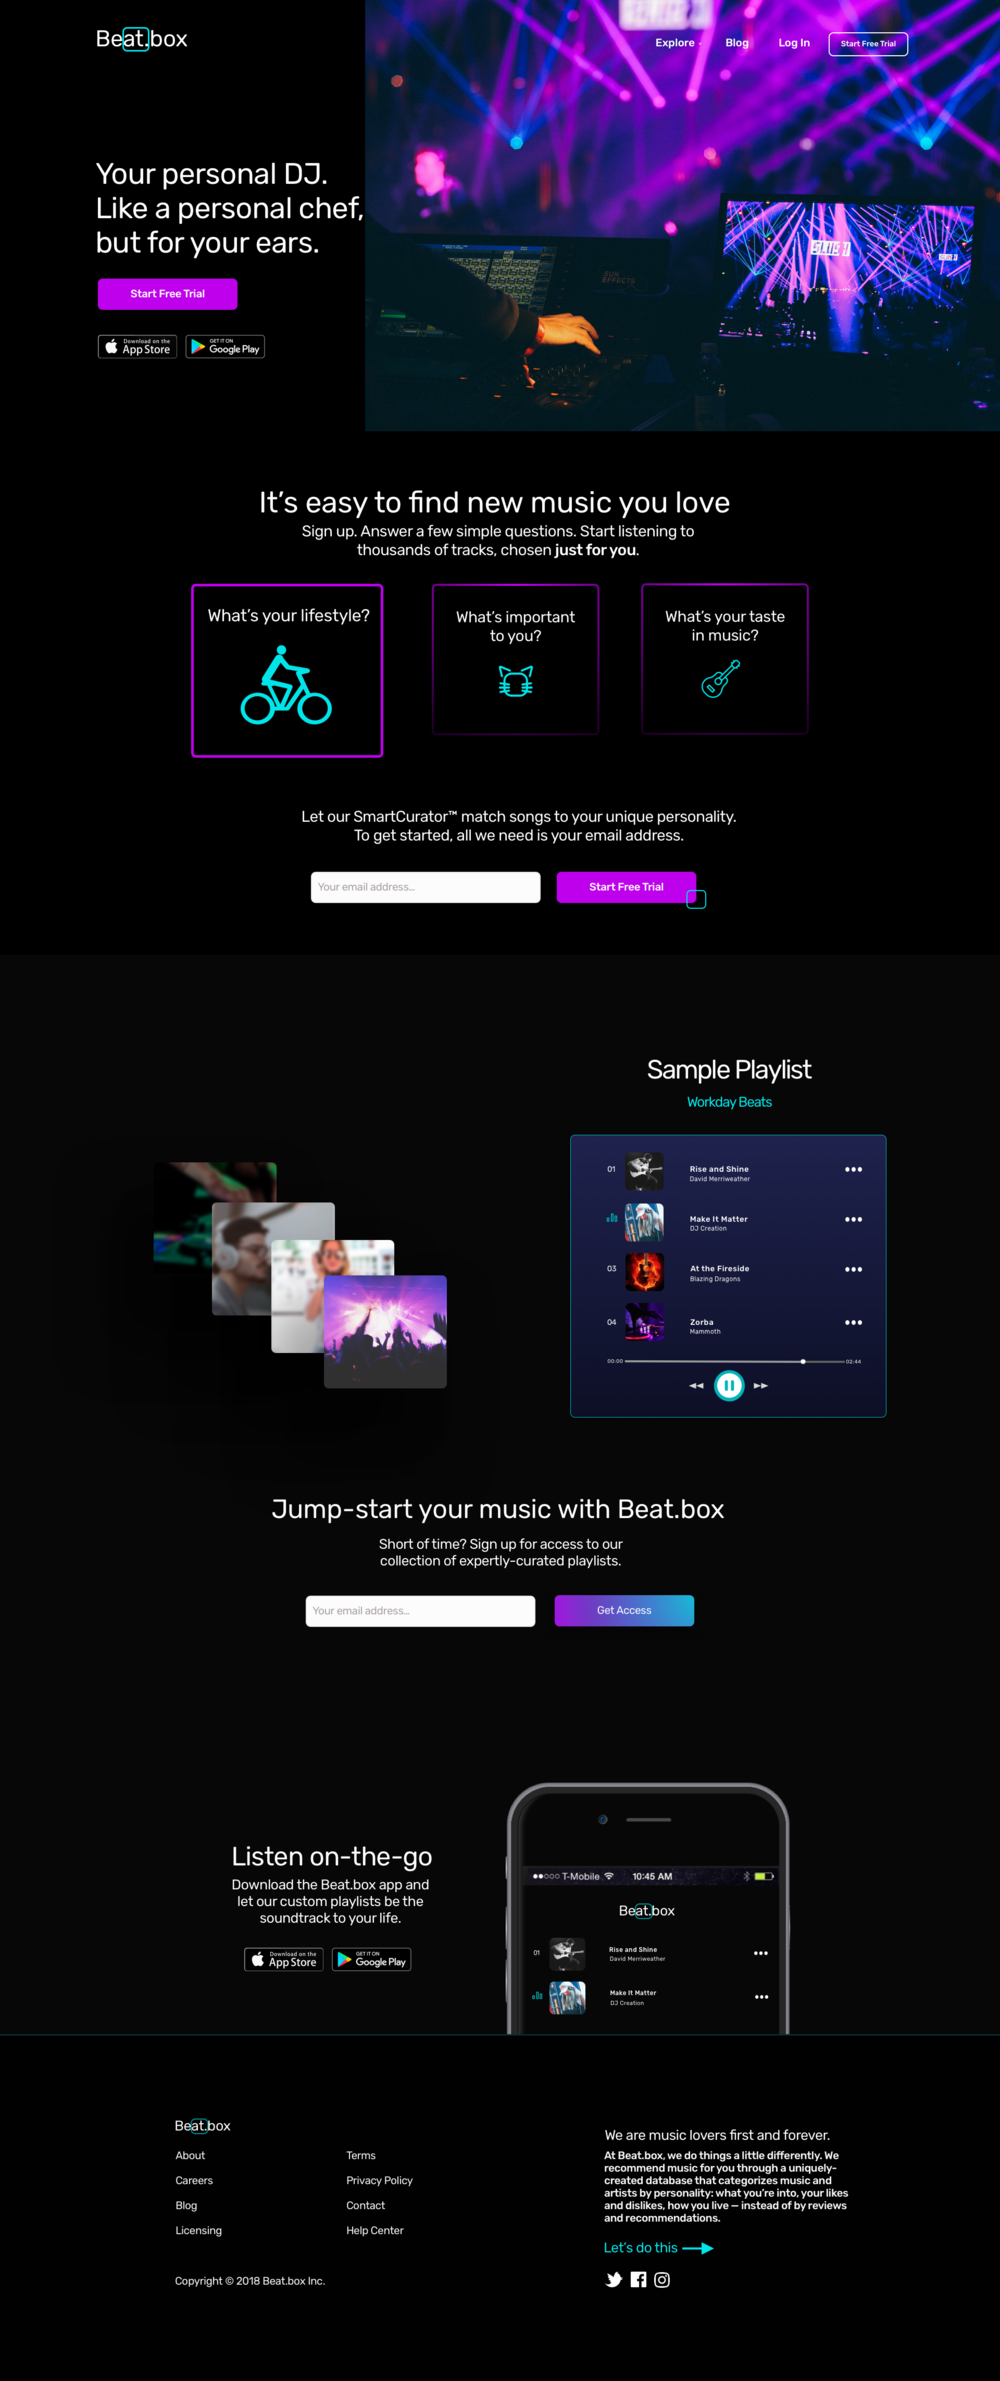 "I created this landing page for a hypothetical company, Beat.box, as the final project for a Visual Design course I took through General Assembly. - The Creative BriefThe task was to create a homepage for a music streaming website to rival Pandora, Tidal, and Spotify. Beat.box's unique selling point is its sophisticated song recommendation engine, which is powered by AI and big data rather than humans. It aims to serve up highly customized song selections from an extensive music database. The user must answer some questions about their preferences in order to set up a profile with which song choices are matched.The Target AudienceThis company is primarily looking to attract young men aged between 18-25, both college students and young professionals. The secondary audience is women aged 18-35.For the first group, a personalized service and the latest music would be priorities. The second group would care more about ease-of-use, and would likely tap into pre-curated playlists rather than setting up a detailed profile.I pulled keywords from the brief that Beat.box wanted to associate with its brand—unique, unexpected, modern, accessible, young, tailored, knowledgable—and used those as a launching point.The ProcessThis project made me realize how interesting I find the psychological effects of typography and color. I constructed a mood board including palettes inspired by images of live concerts, and was guided by our instructor to choose the most visually striking of these as it would resonate with the audience. I opted for flashes of bright color (pink, turquoise, blue) against an otherwise monochrome background. I chose a sans serif font, Rubik, which was crisp and modern but had enough curves to feel friendly.The goal of the landing page is to get a visitor to the site to sign up for a free trial. I designed two ""ways in"". The first is represented by the prominent calls to action in the navigation, next to the hero image, and in the first content block, which shows off the customization part of Beat.box's service.The second content block gives the user an example of the pre-made, themed playlists they can easily access in return for handing over their email address. This section is intended to be a lower barrier to entry. I designed an embedded music player which would stream extracts of the playlist as a taster of what the site contains.The landing page also prompts a user to download its mobile app in two separate places as promoting listening across devices is strategically important for a tech-savvy audience.Finally, I included another call to action in the footer, along with additional information about Beat.box's secret sauce. This is the most casual invitation to get started, and would take the user to the free trial sign up page.ToolsI used Sketch and InVision to create this prototype. There were 18 total iterations. User testing would be required to establish the efficacy of the calls to action and engagement with the interactive elements. Some, such as the hover effect over the three pink boxes, would need rethinking for mobile."